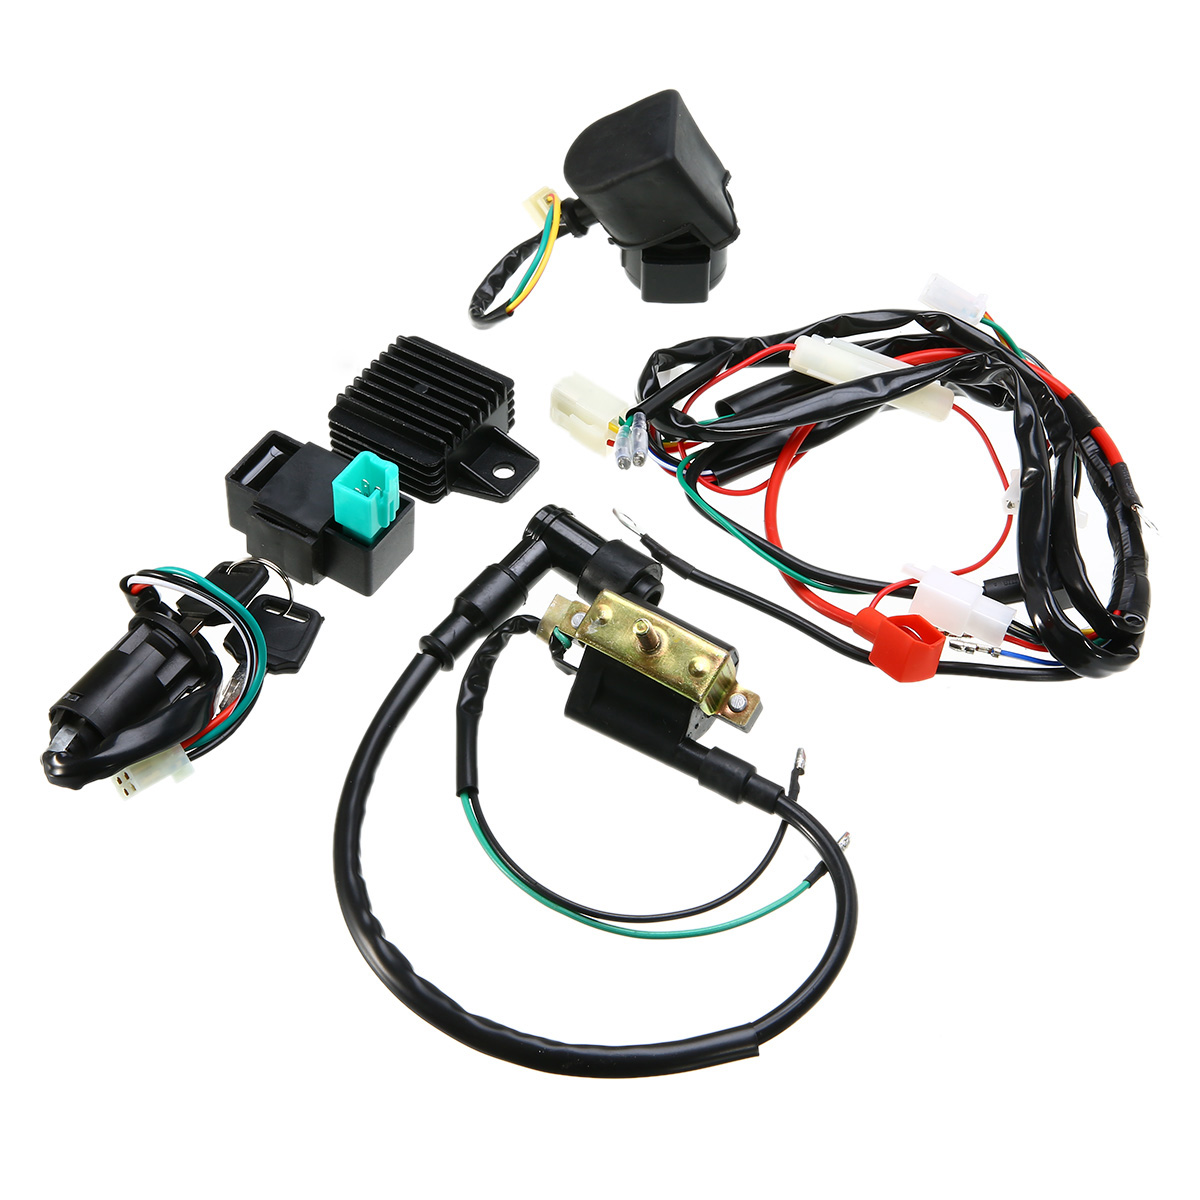 Motorcycle Ignition 50cc-125cc CDI Quad Wiring Harness Loom Solenoid Coil Rectifier for 50cc 110cc 125cc PIT Quad Dirt Bike ATV